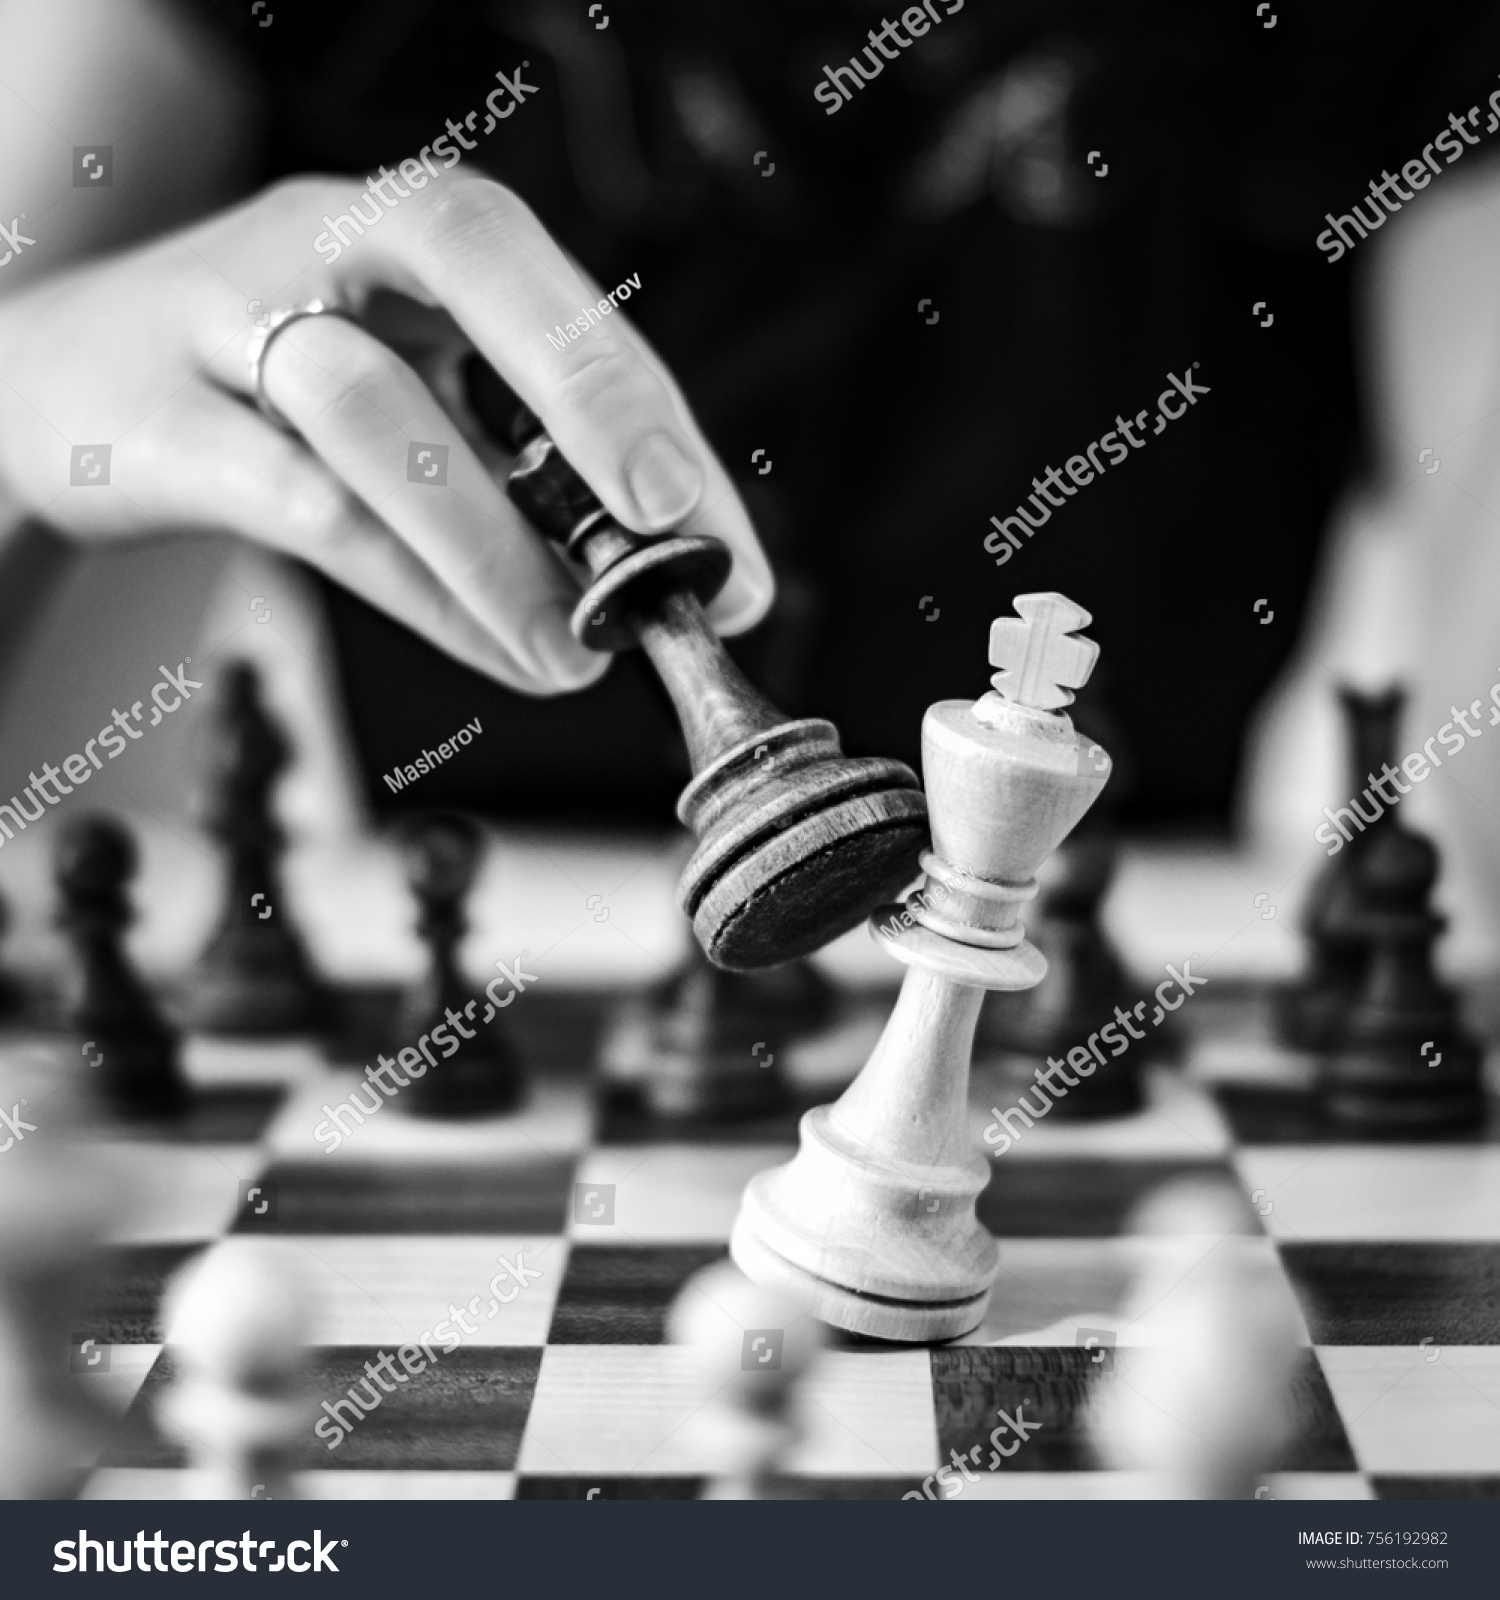 Defeating the white king taking the black queen in her hand